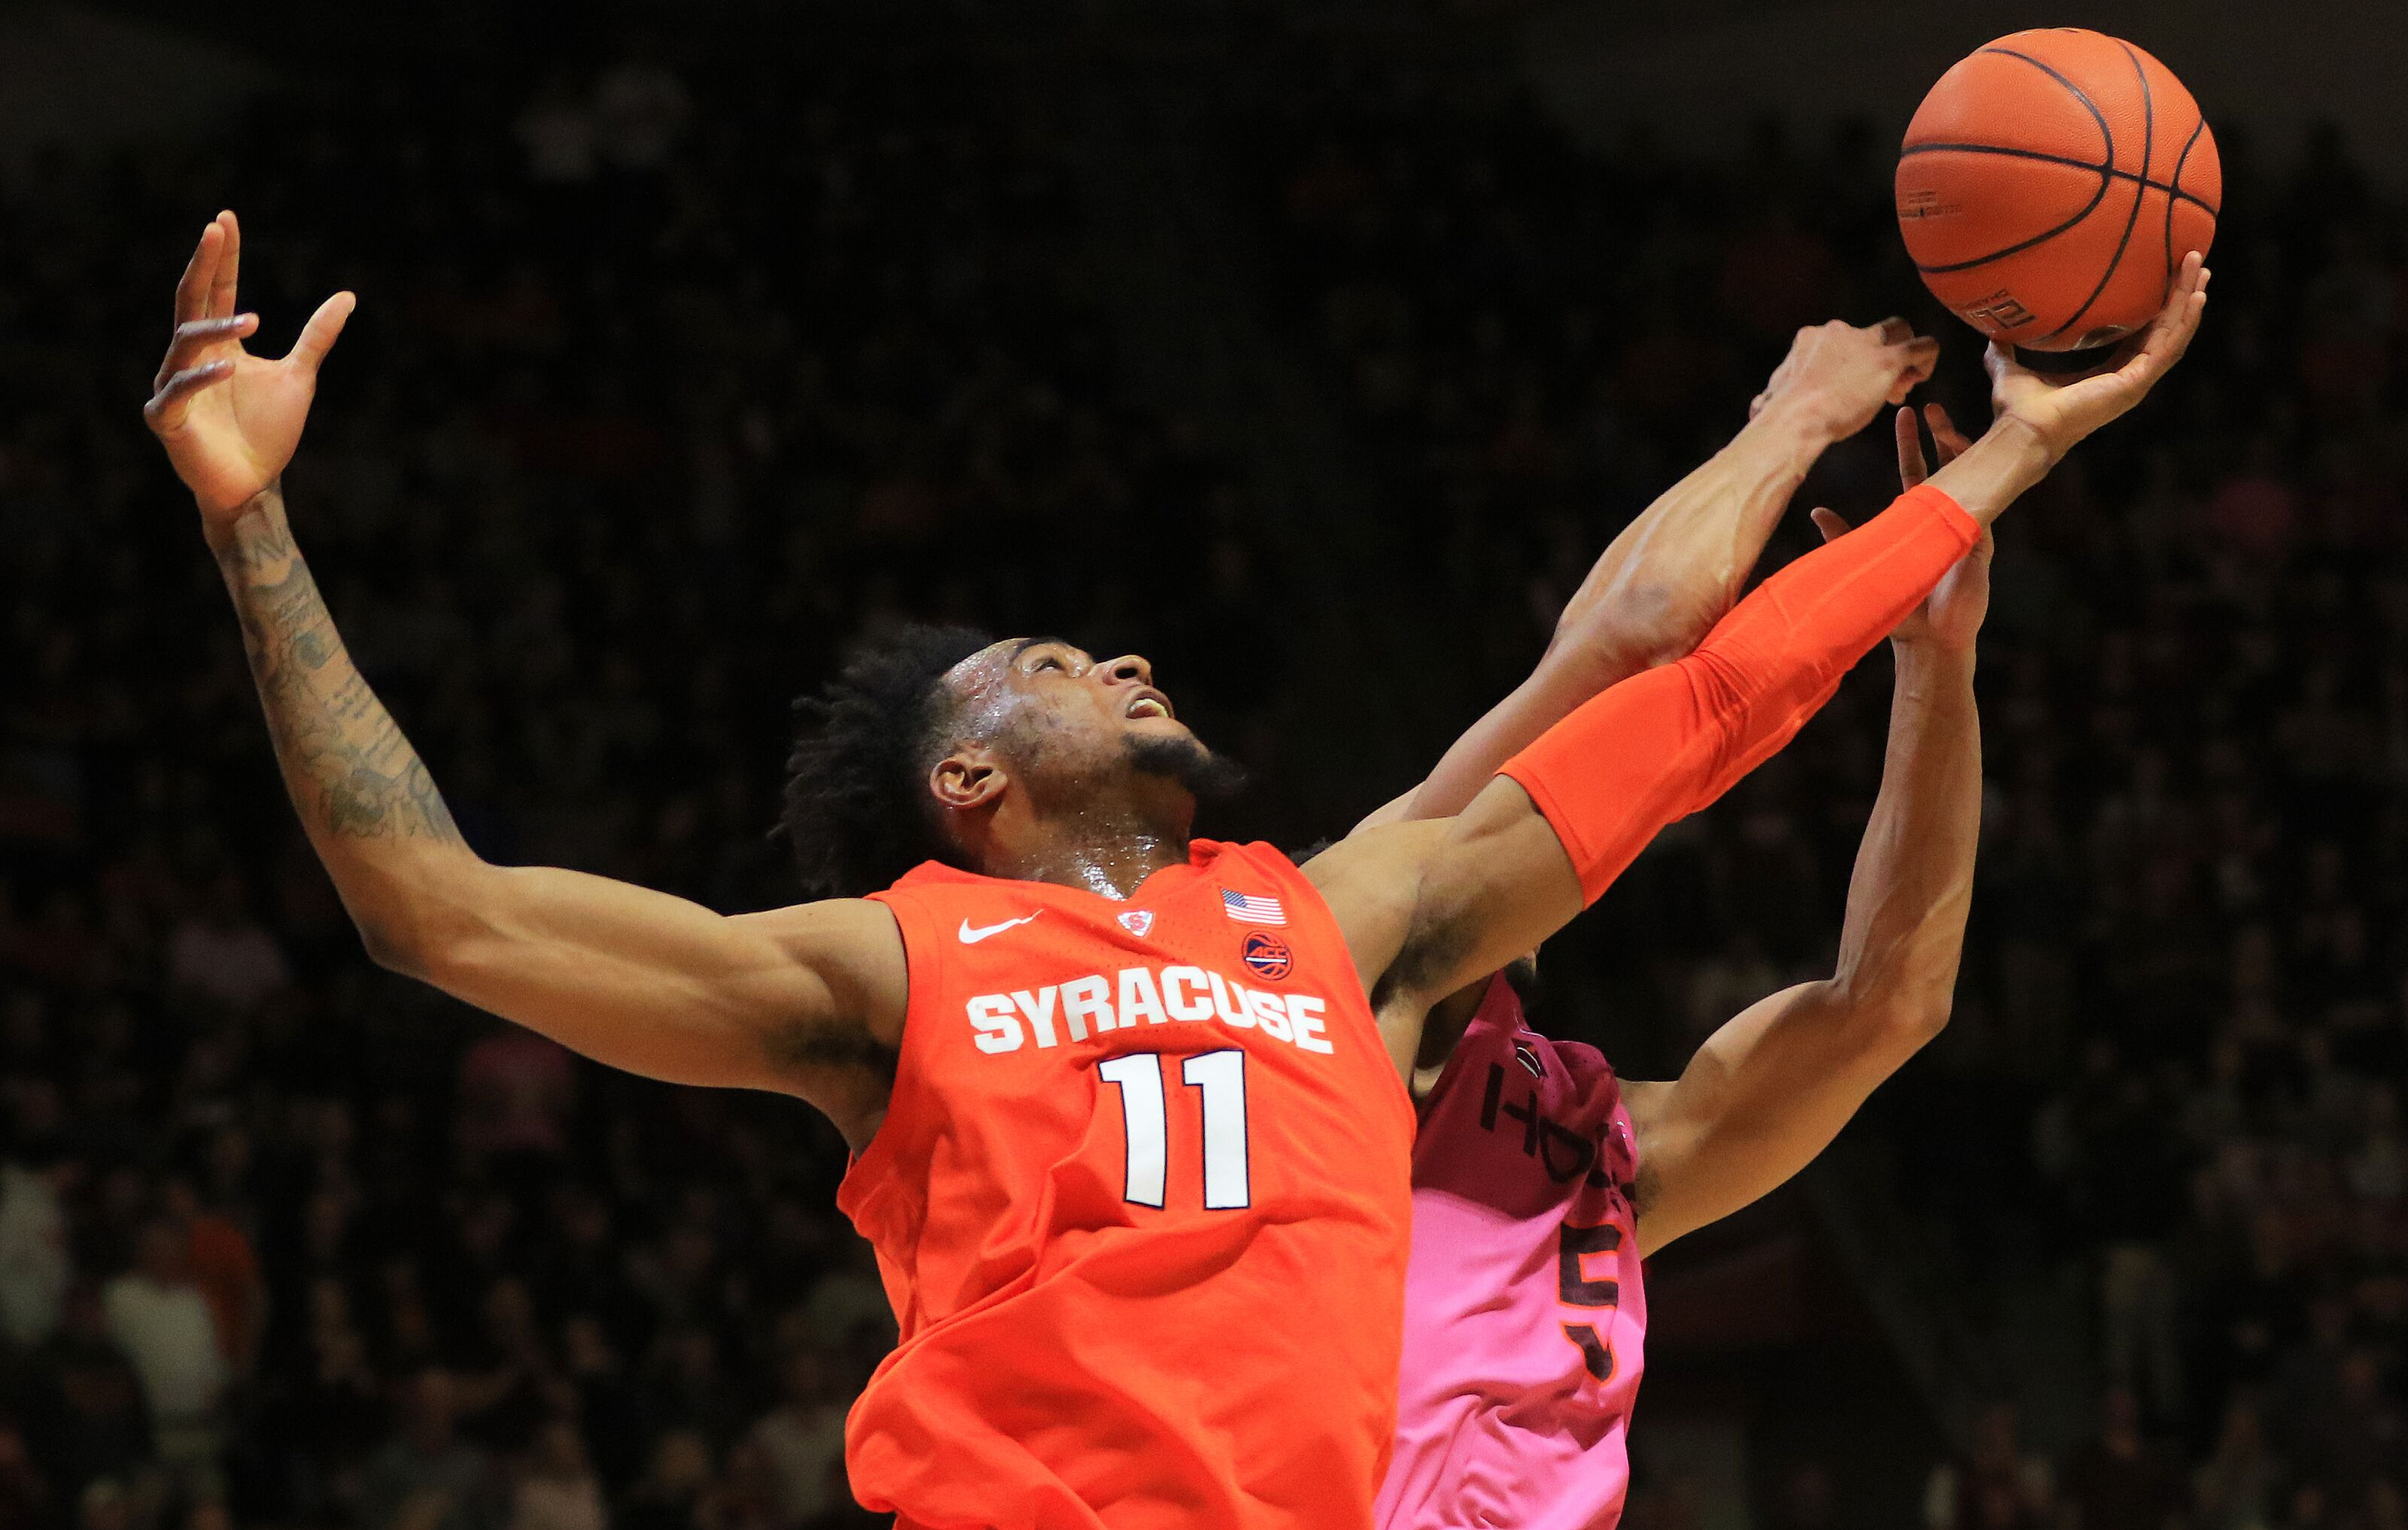 Syracuse Basketball Sloppy Orange Effort Not Enough Vs Va Tech Hokies